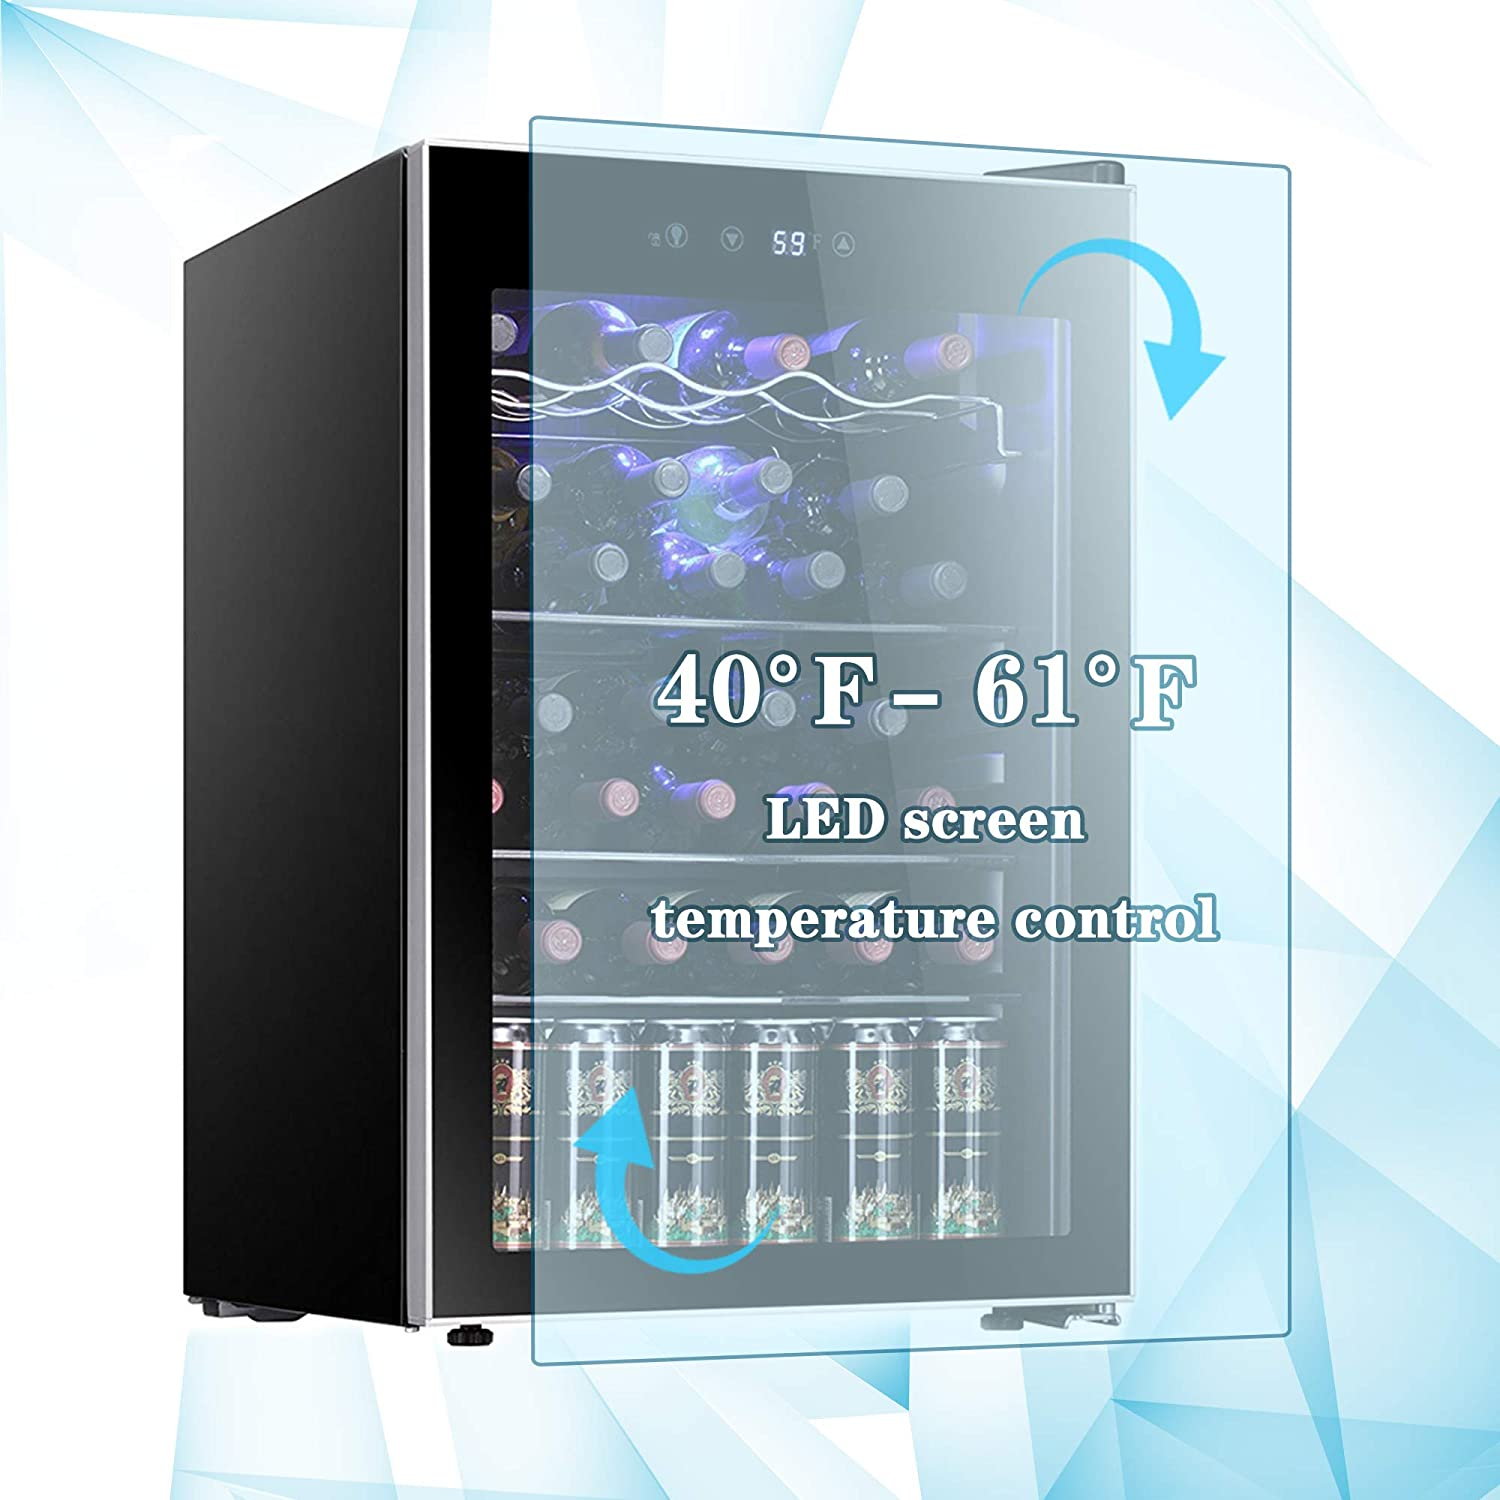 Digital Temperature Control R.W.FLAME 26 Bottle Wine Cooler Refrigerator//Small Wine Cellar//Beer Counter//Wine Showcase Single Zone Freestanding Compressor Cooling System